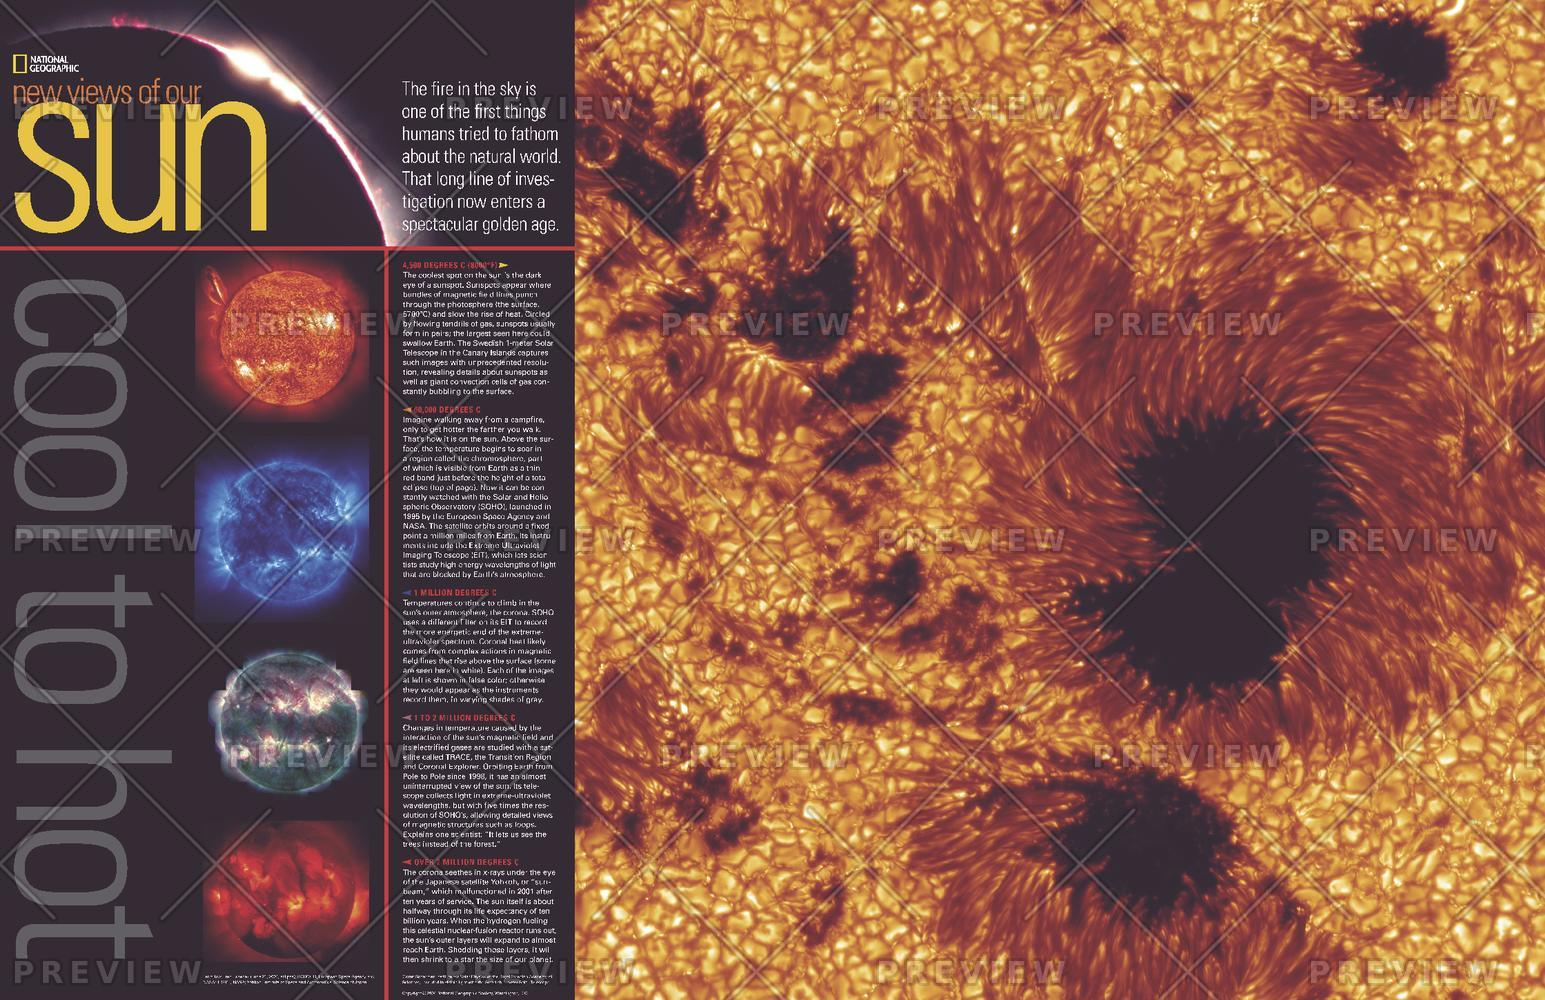 New Views of Our Sun, Cool to Hot - Published 2004